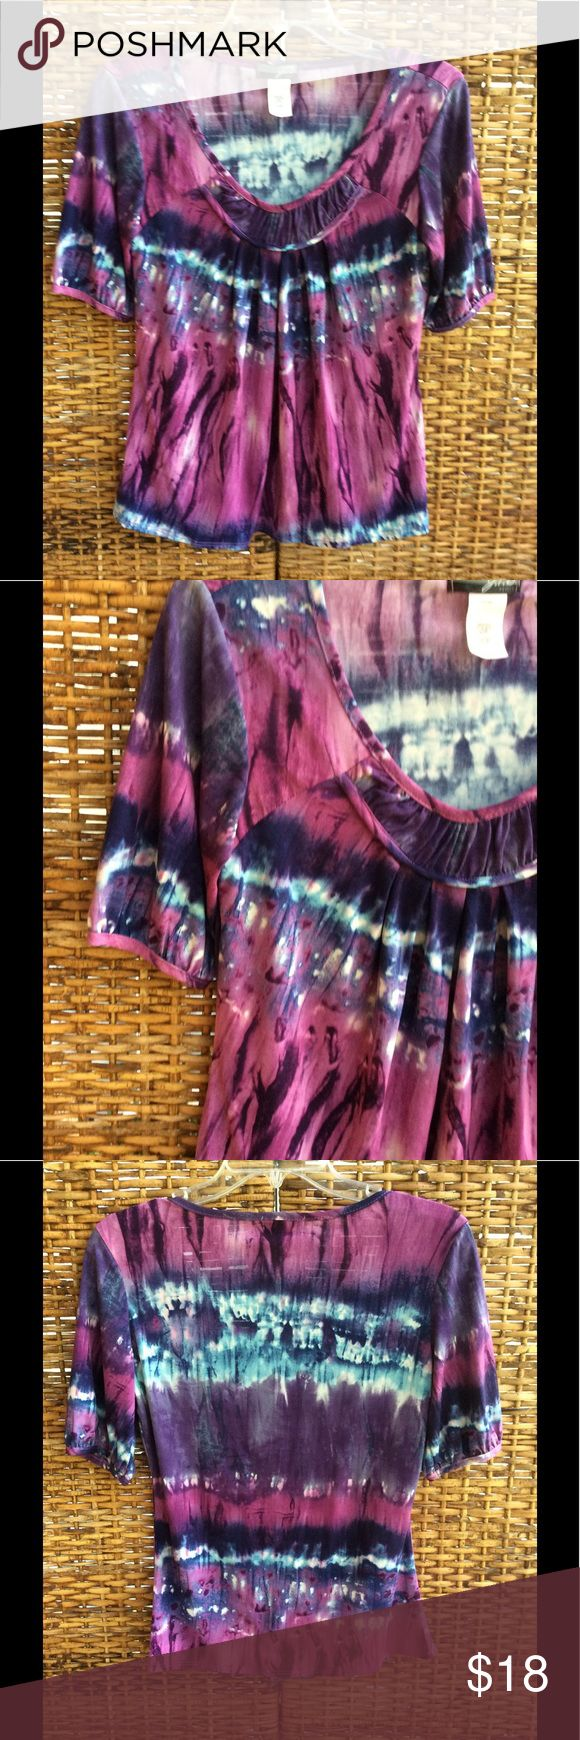 🌺BEAUTIFUL SMALL-- PETITE SHORT SLEEVED TOP. 🌺 VERY CUTE AND COMFORTABLE SHORT SLEEVED TOP. GREAT NECKLINE. KIND OF A TYE DYE LOOK THAT IS REALLY PRETTY. WEAR THIS WITH JEANS OR PANTS OR SHORTS OR SKIRT. MACHINE WASHABLE. YOU ARE GOING TO LOVE ❤️ WEARING THIS CUTE TOP. J. T. B.  PETITE Tops Blouses